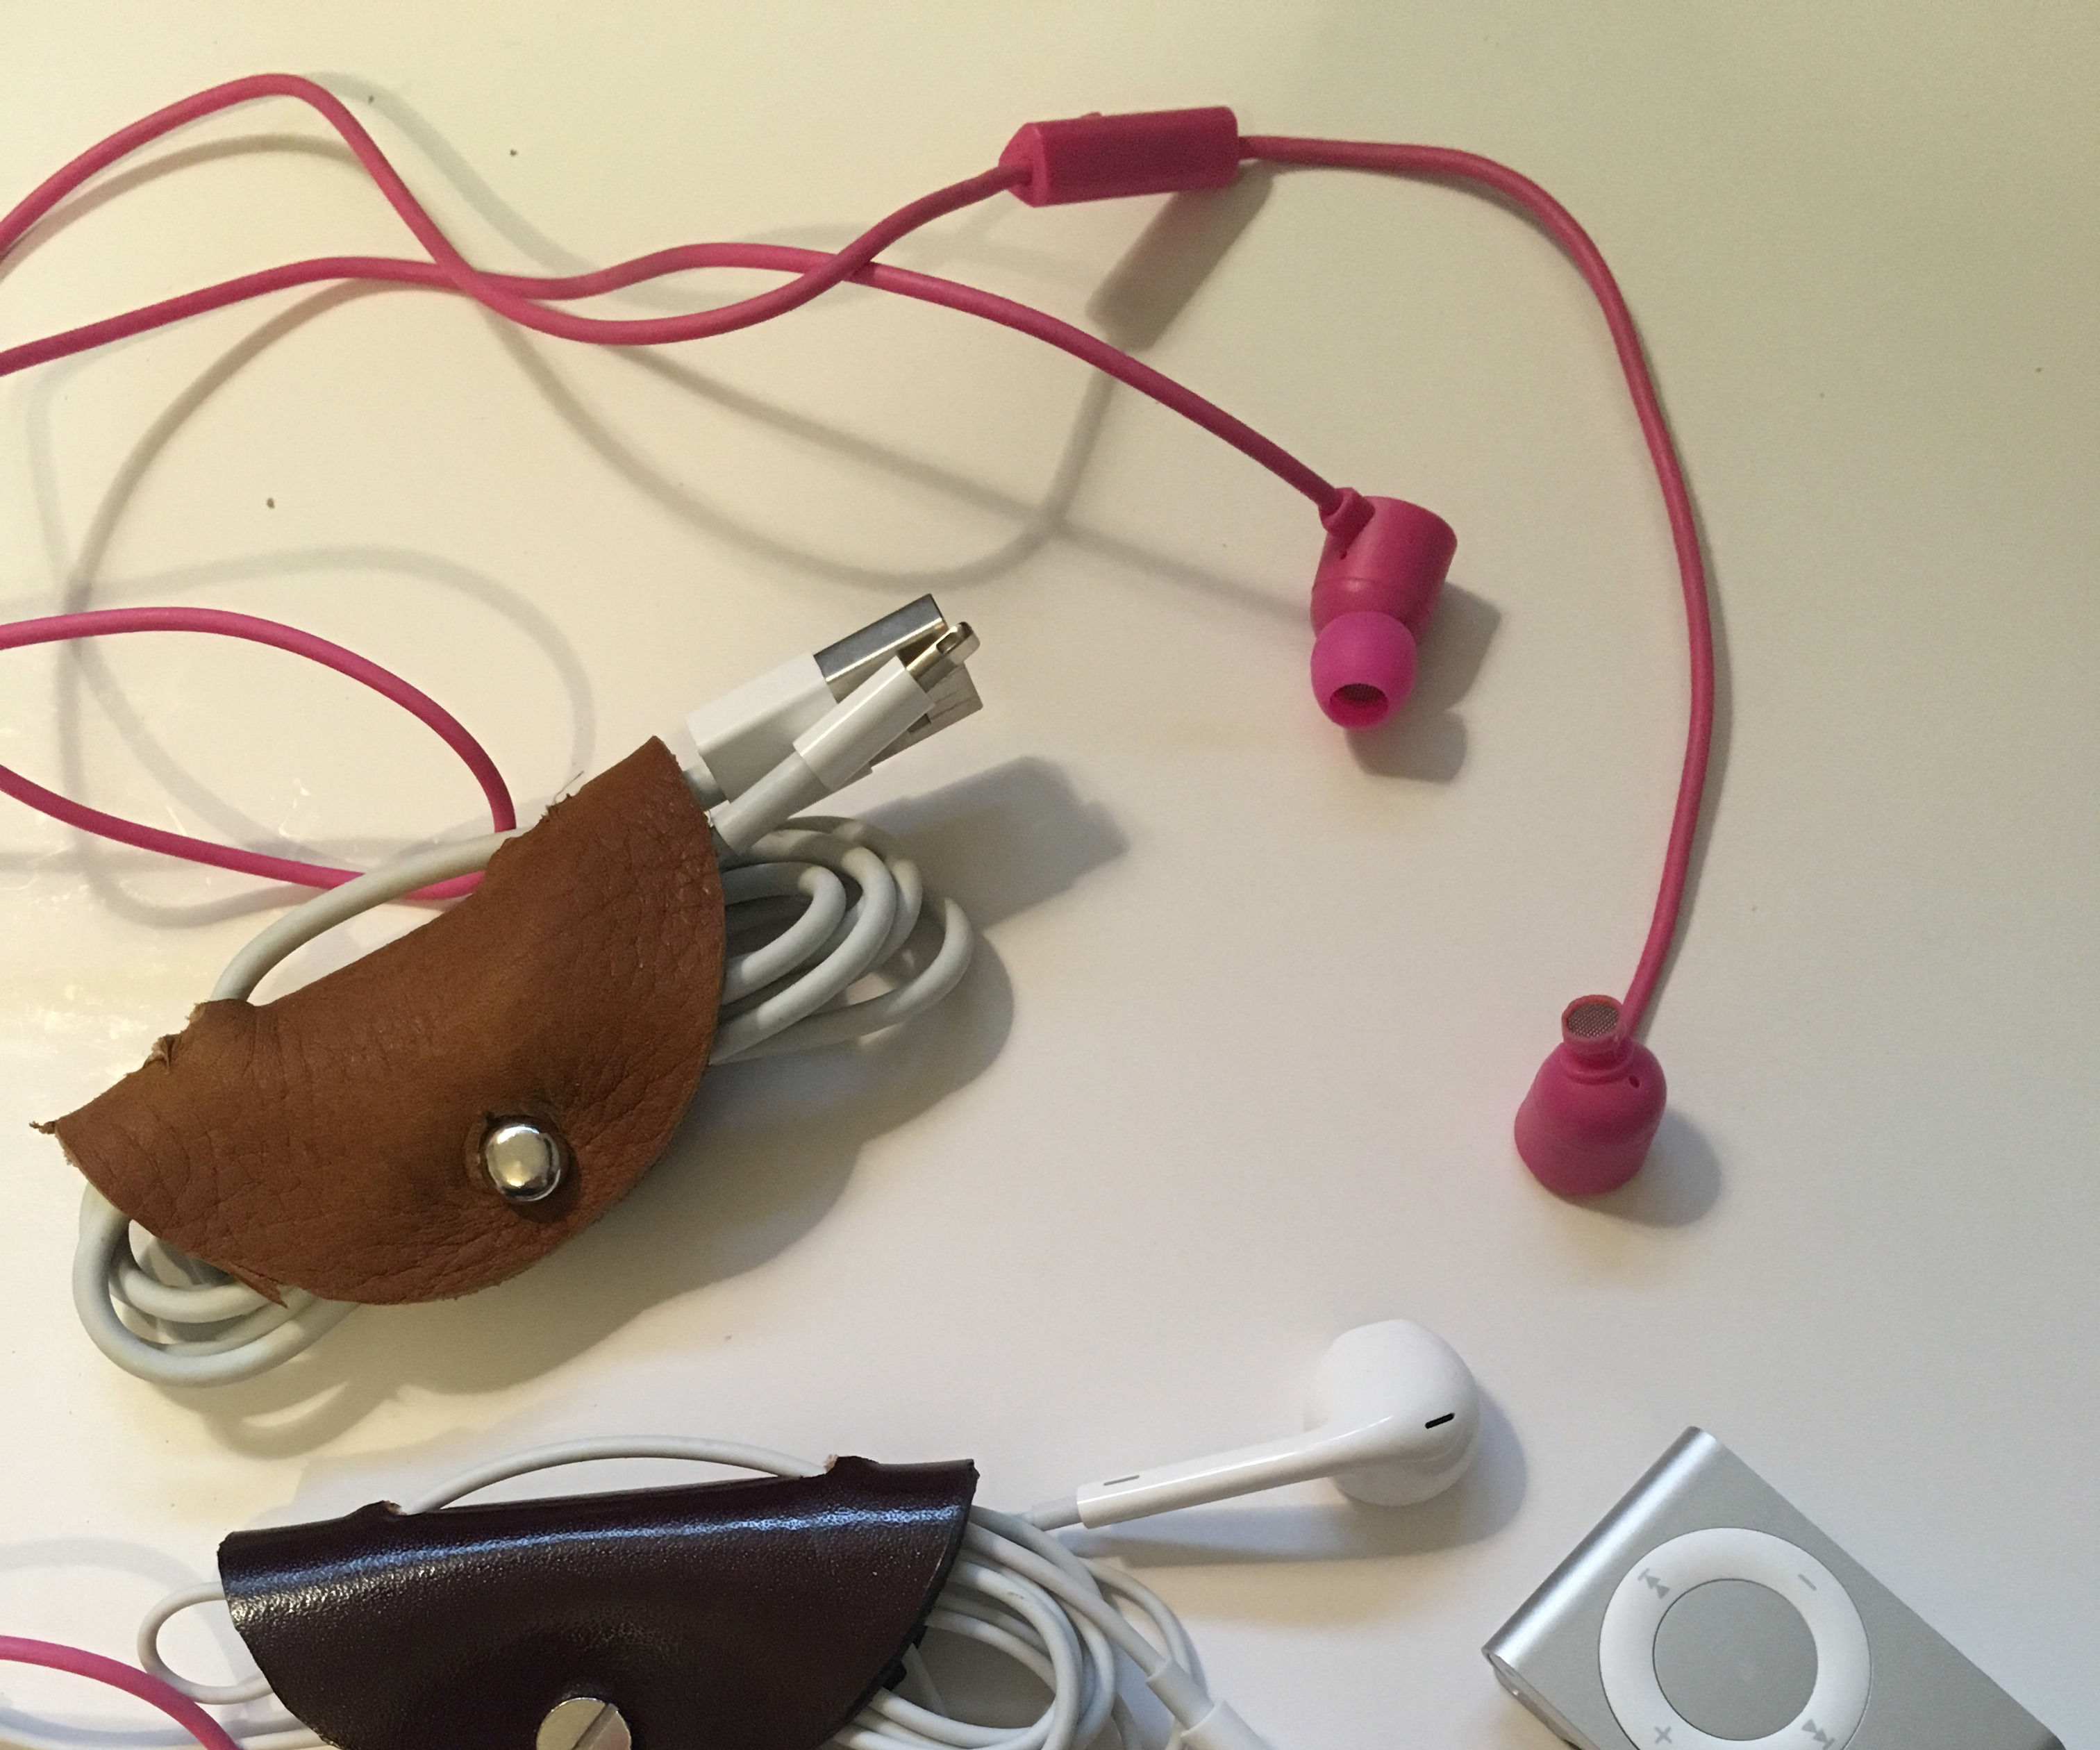 Leather Case for Earphones & Cords